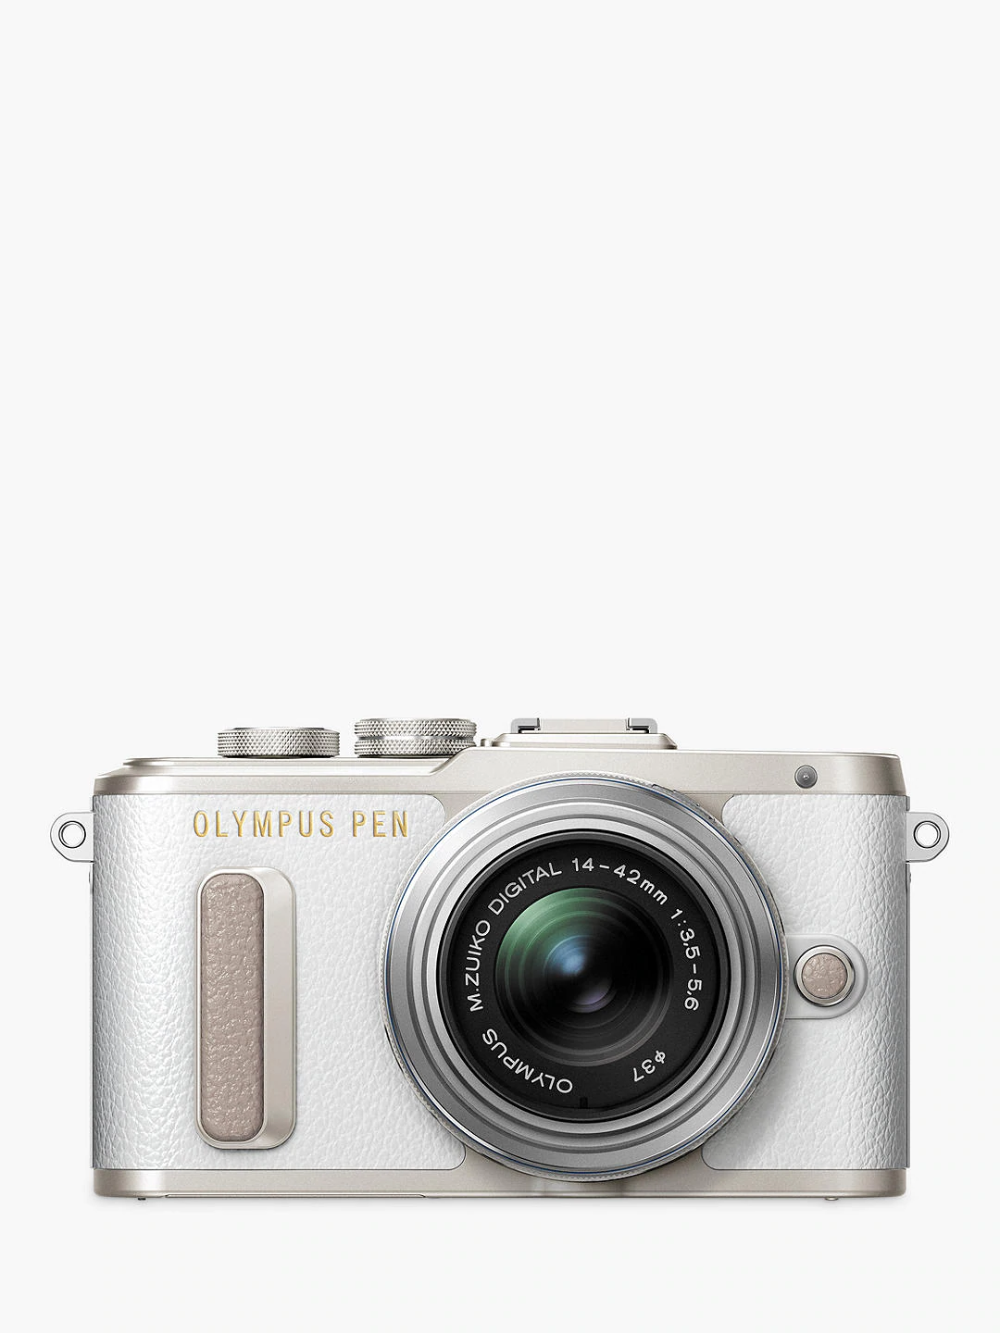 Olympus Pen E Pl8 Compact System Camera With 14 42mm Ii R Lens Hd 1080p 16 1mp Wi Fi 3 System Camera Olympus Pen Camera